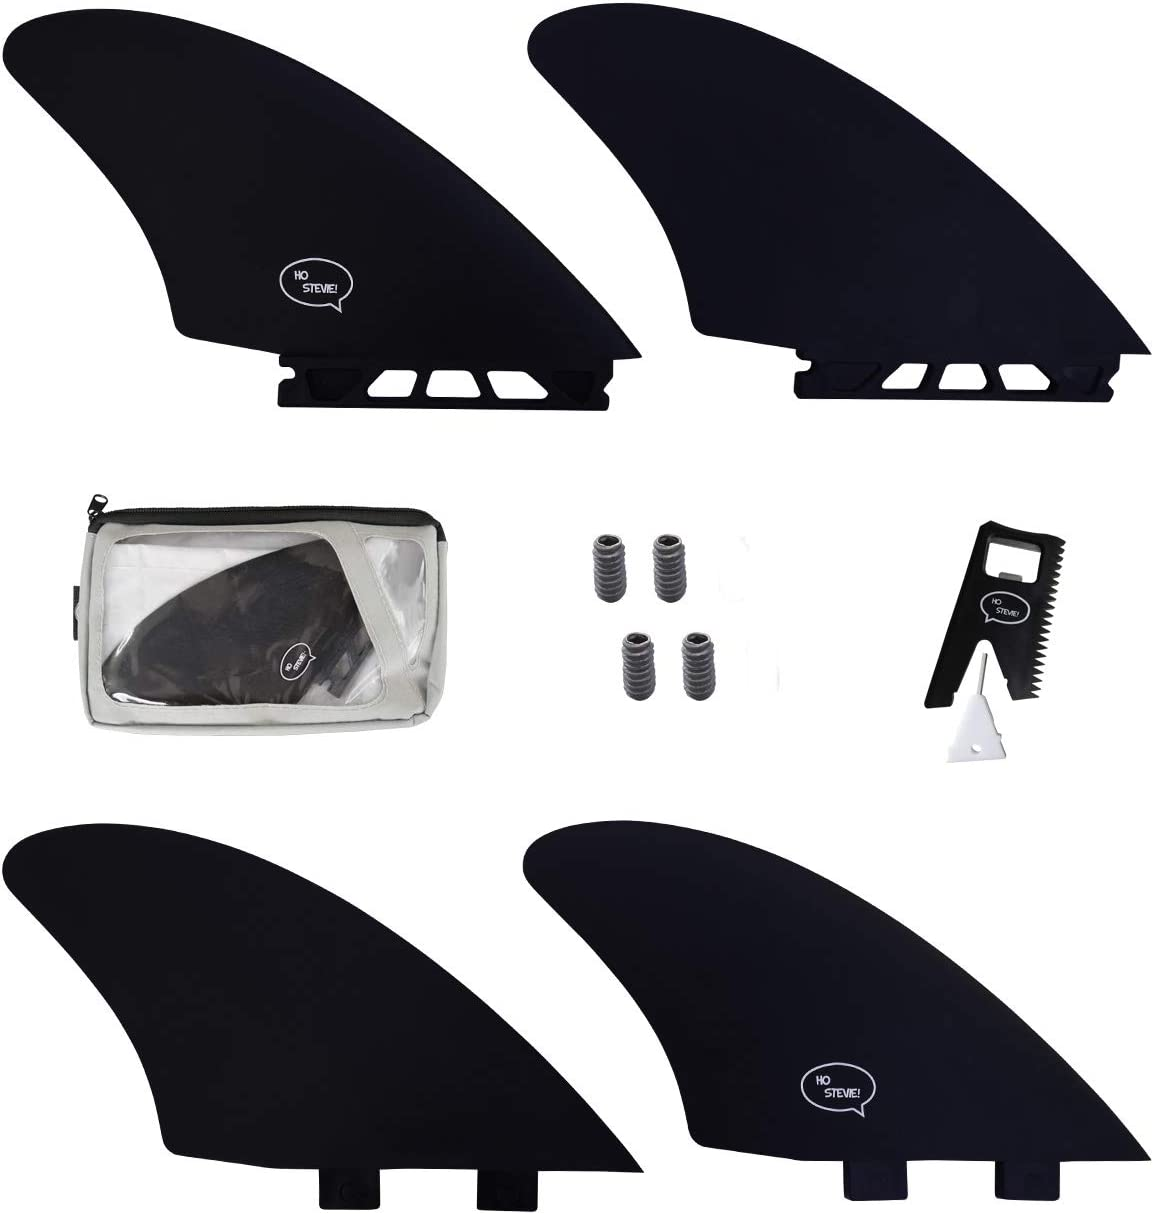 5% OFF Ho Stevie Surfboard Twin Keel Fins FCS List price - 2 or Compatible